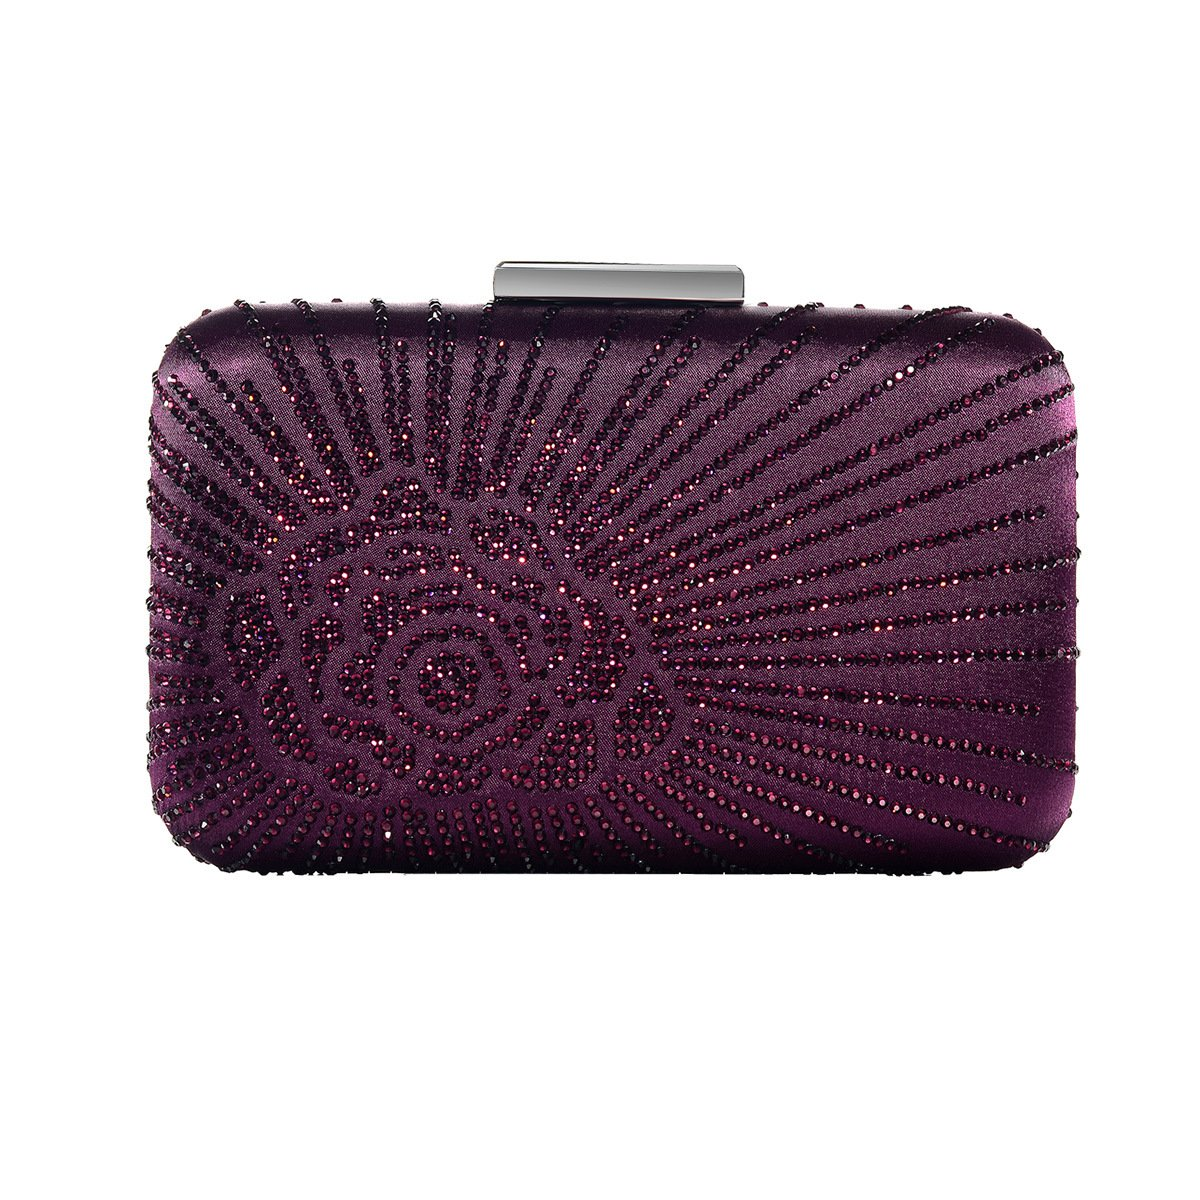 DMIX Womens Large Satin Silk Hard Clutch Evening Bag and Handbags with Crystal for Wedding Bridal Party Prom Purple